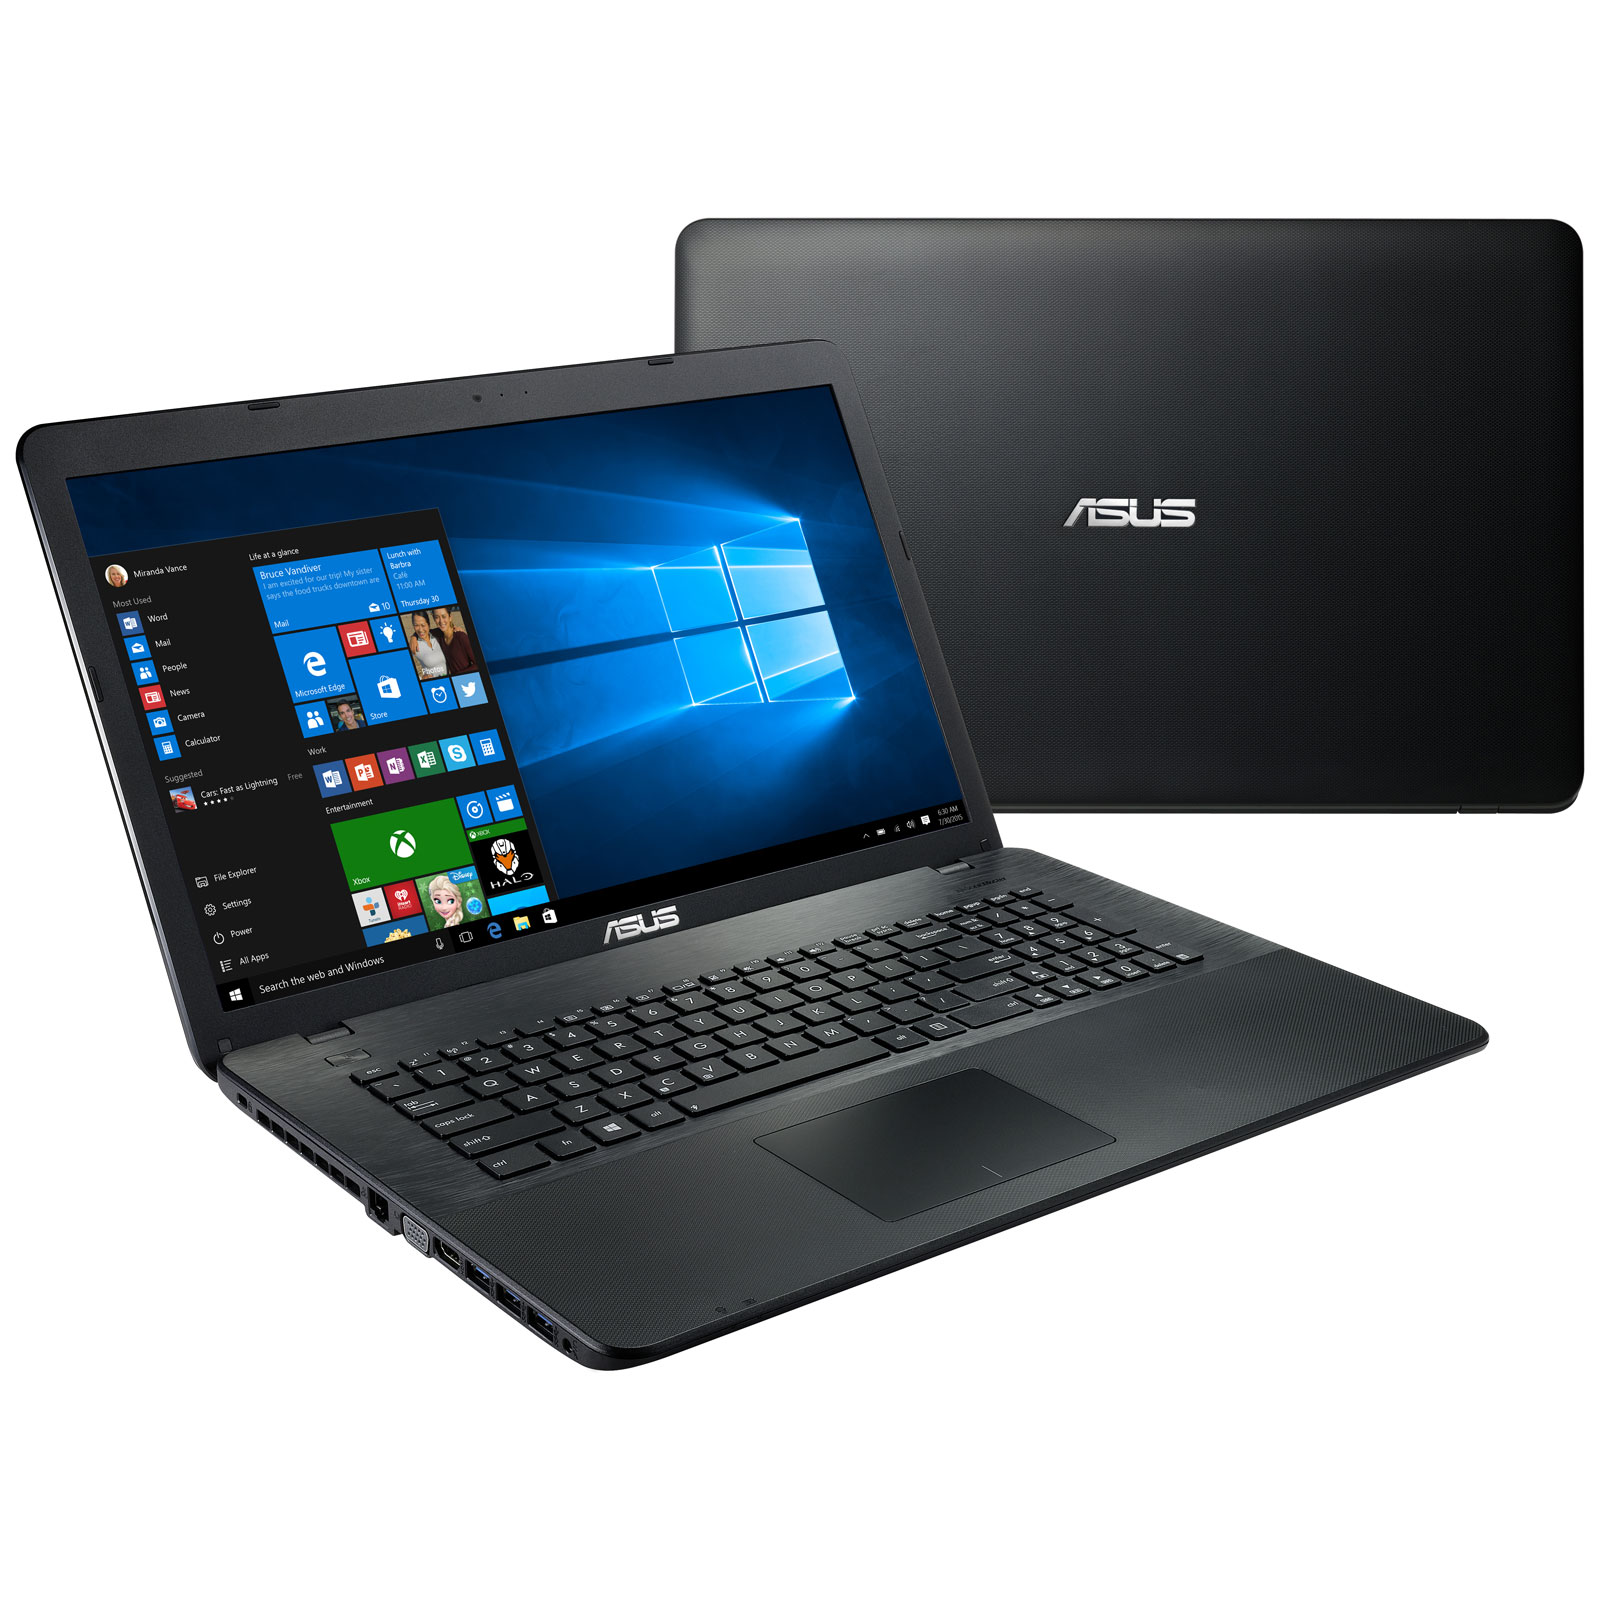 asus x751lav t4615t noir pc portable asus sur. Black Bedroom Furniture Sets. Home Design Ideas